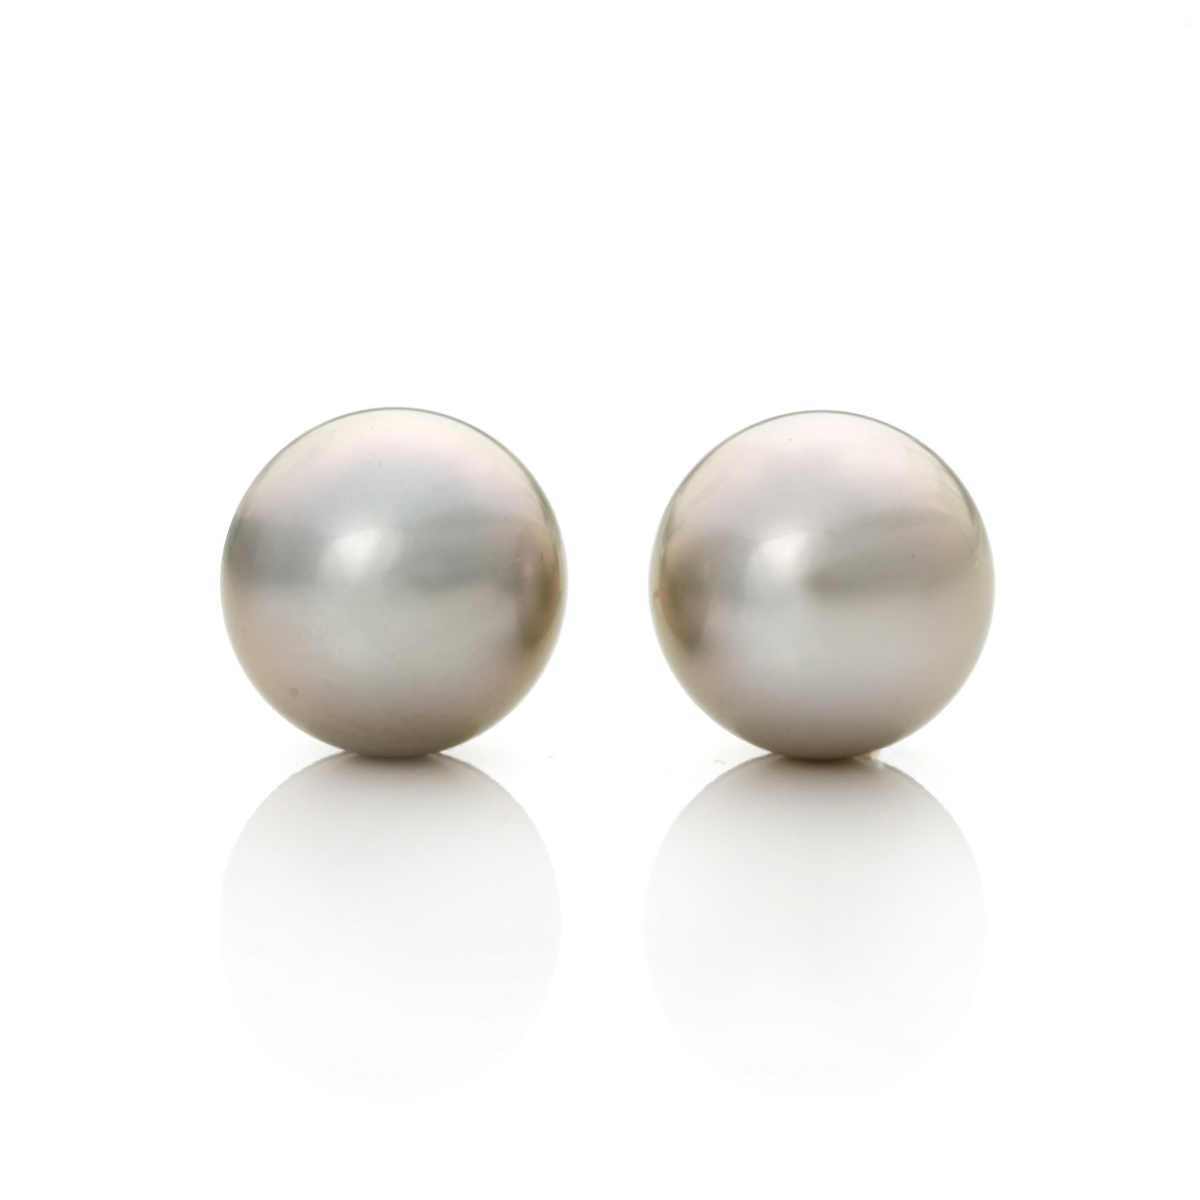 Gump's Grey Tahitian South Sea Cultured Pearl Earrings